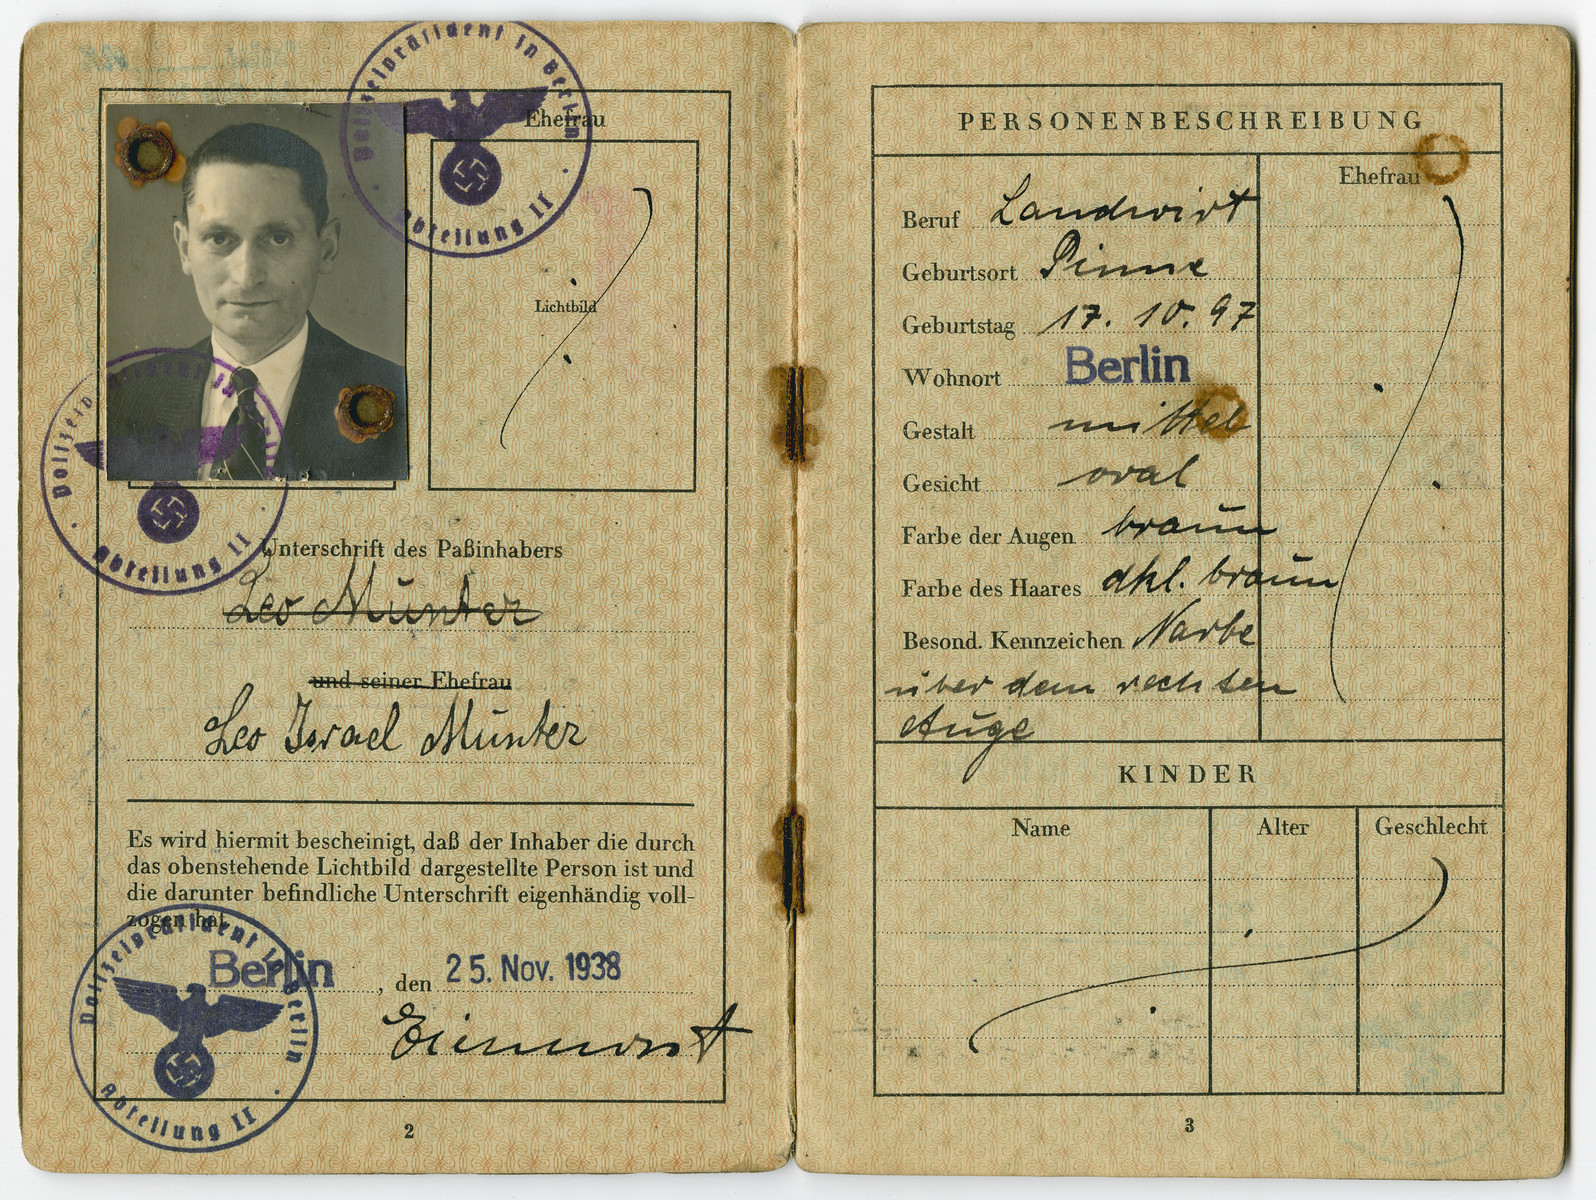 Leo Munter's (Annemarie's step-father), German passport showing his forced name change to include the middle name of Israel.   The Jews were not allowed to have Aryan names on their passports, so all of the boys were named Israel and the girls were Sara.